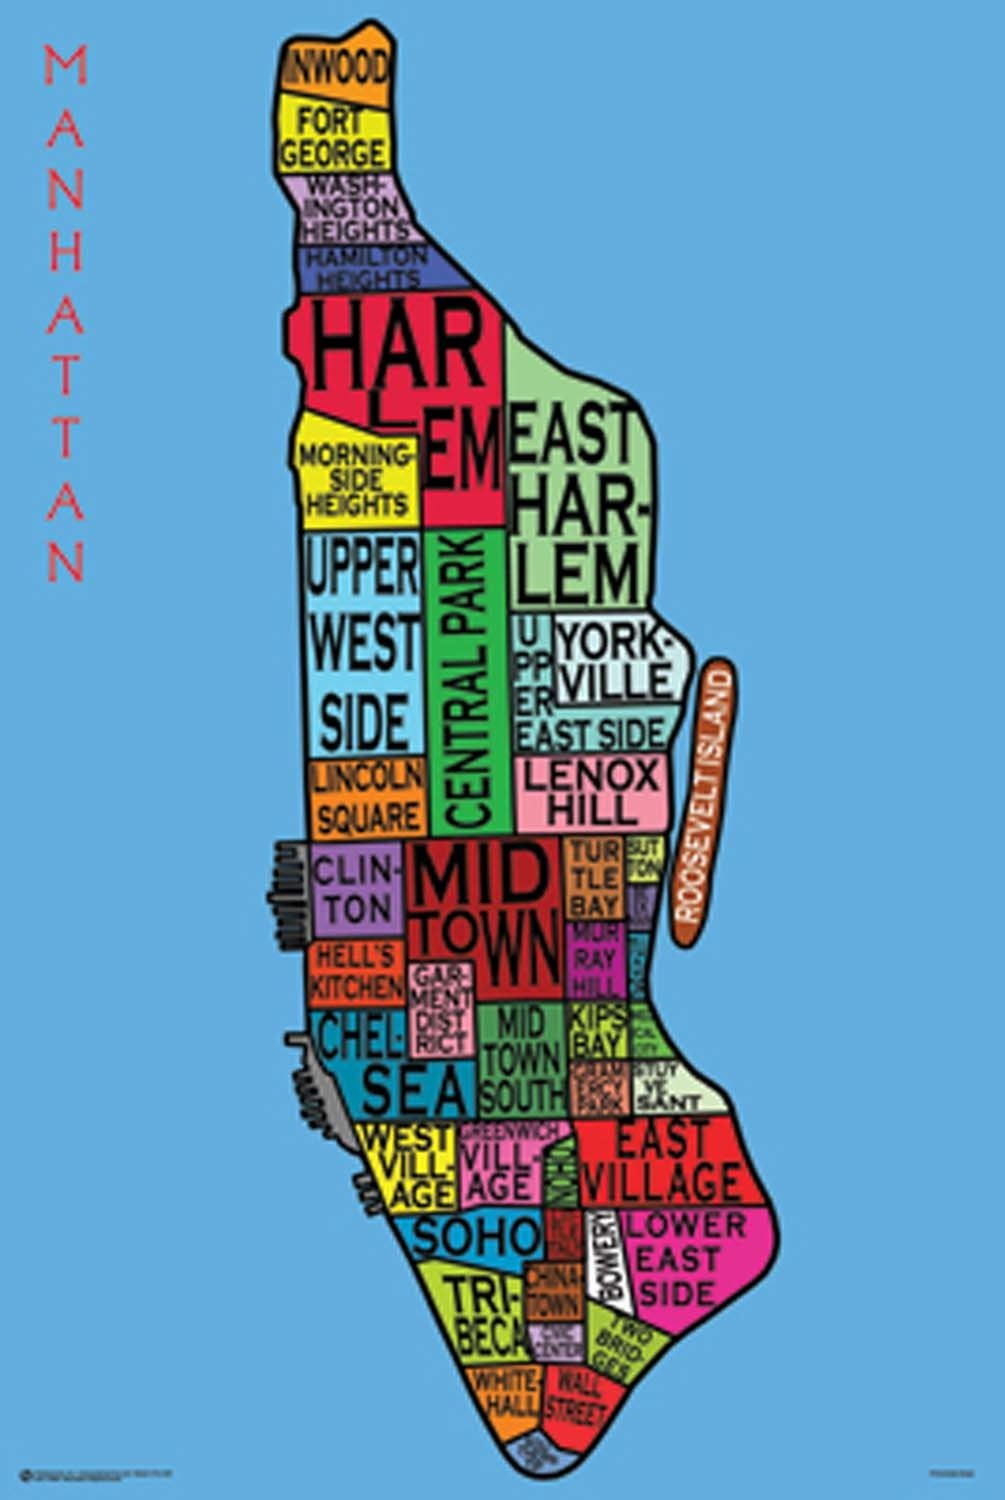 Amazoncom Posterservice Manhattan Neighborhoods Poster Prints - Paris map neighborhoods